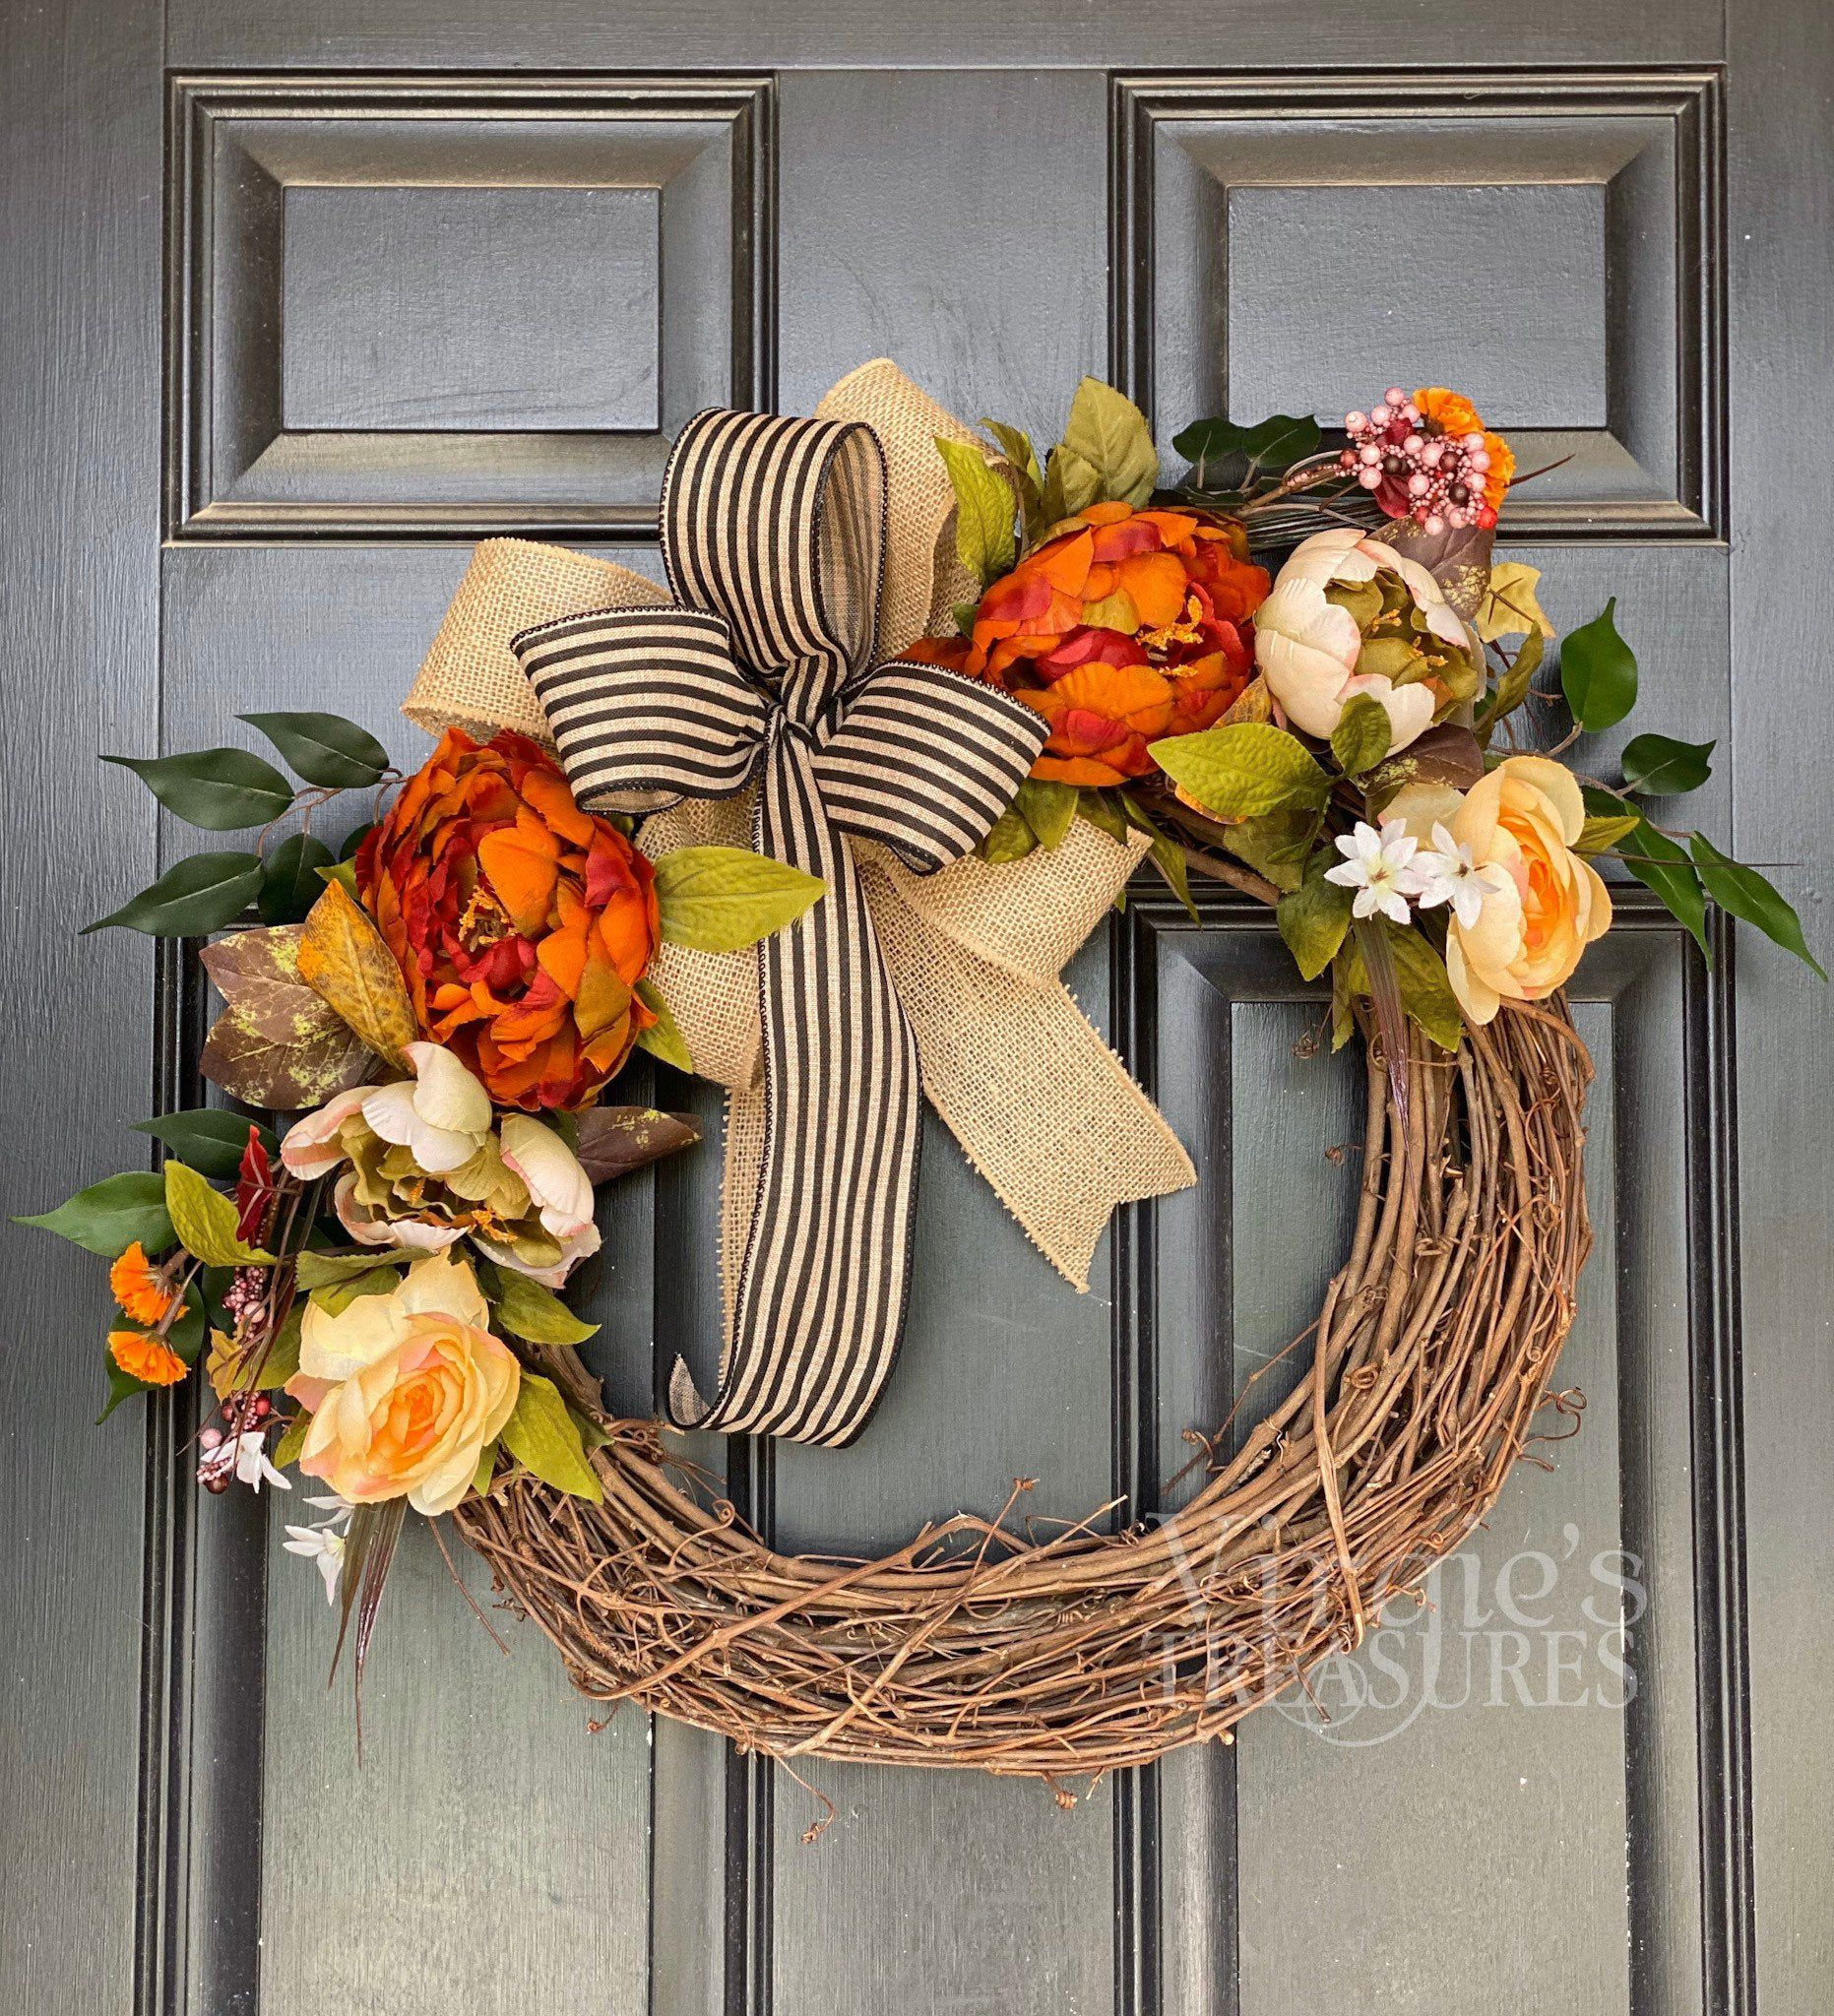 Excited to share this item from my etsy shop fall wreath